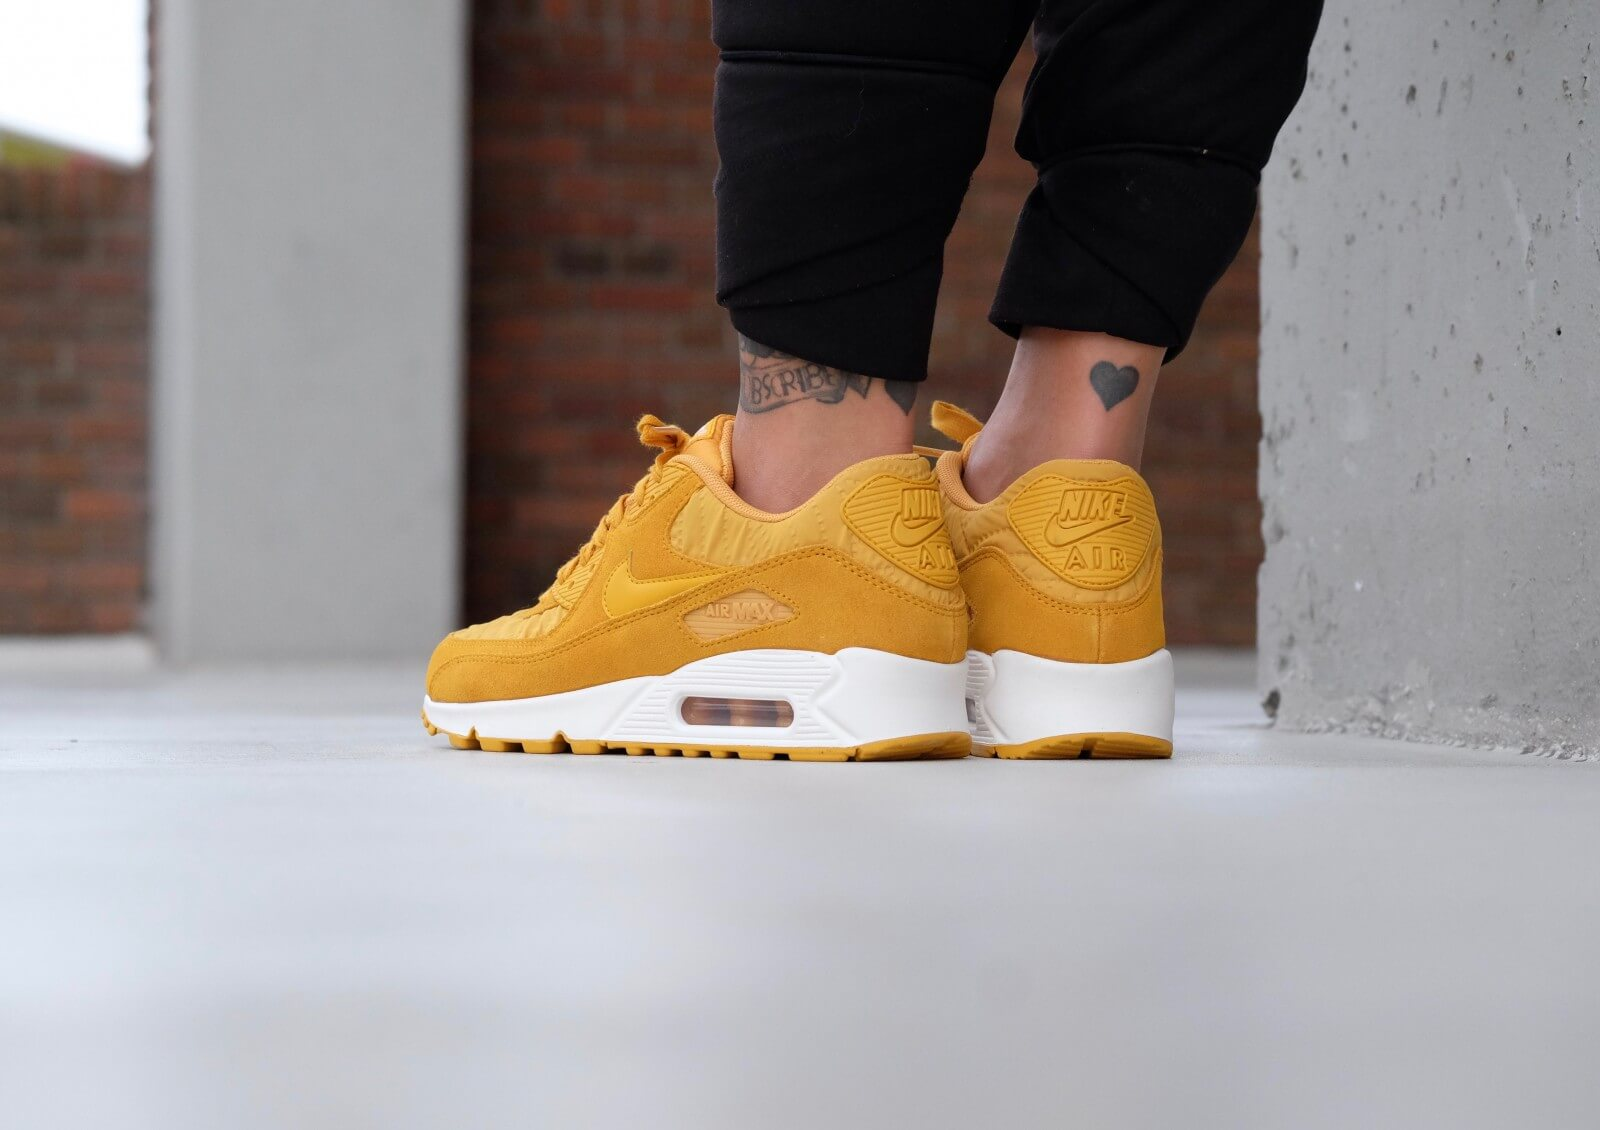 official photos 2711b bfa15 ... Nike WMNS Air Max 90 Premium Gold Leaf  Ivory - 443817-701 . ...